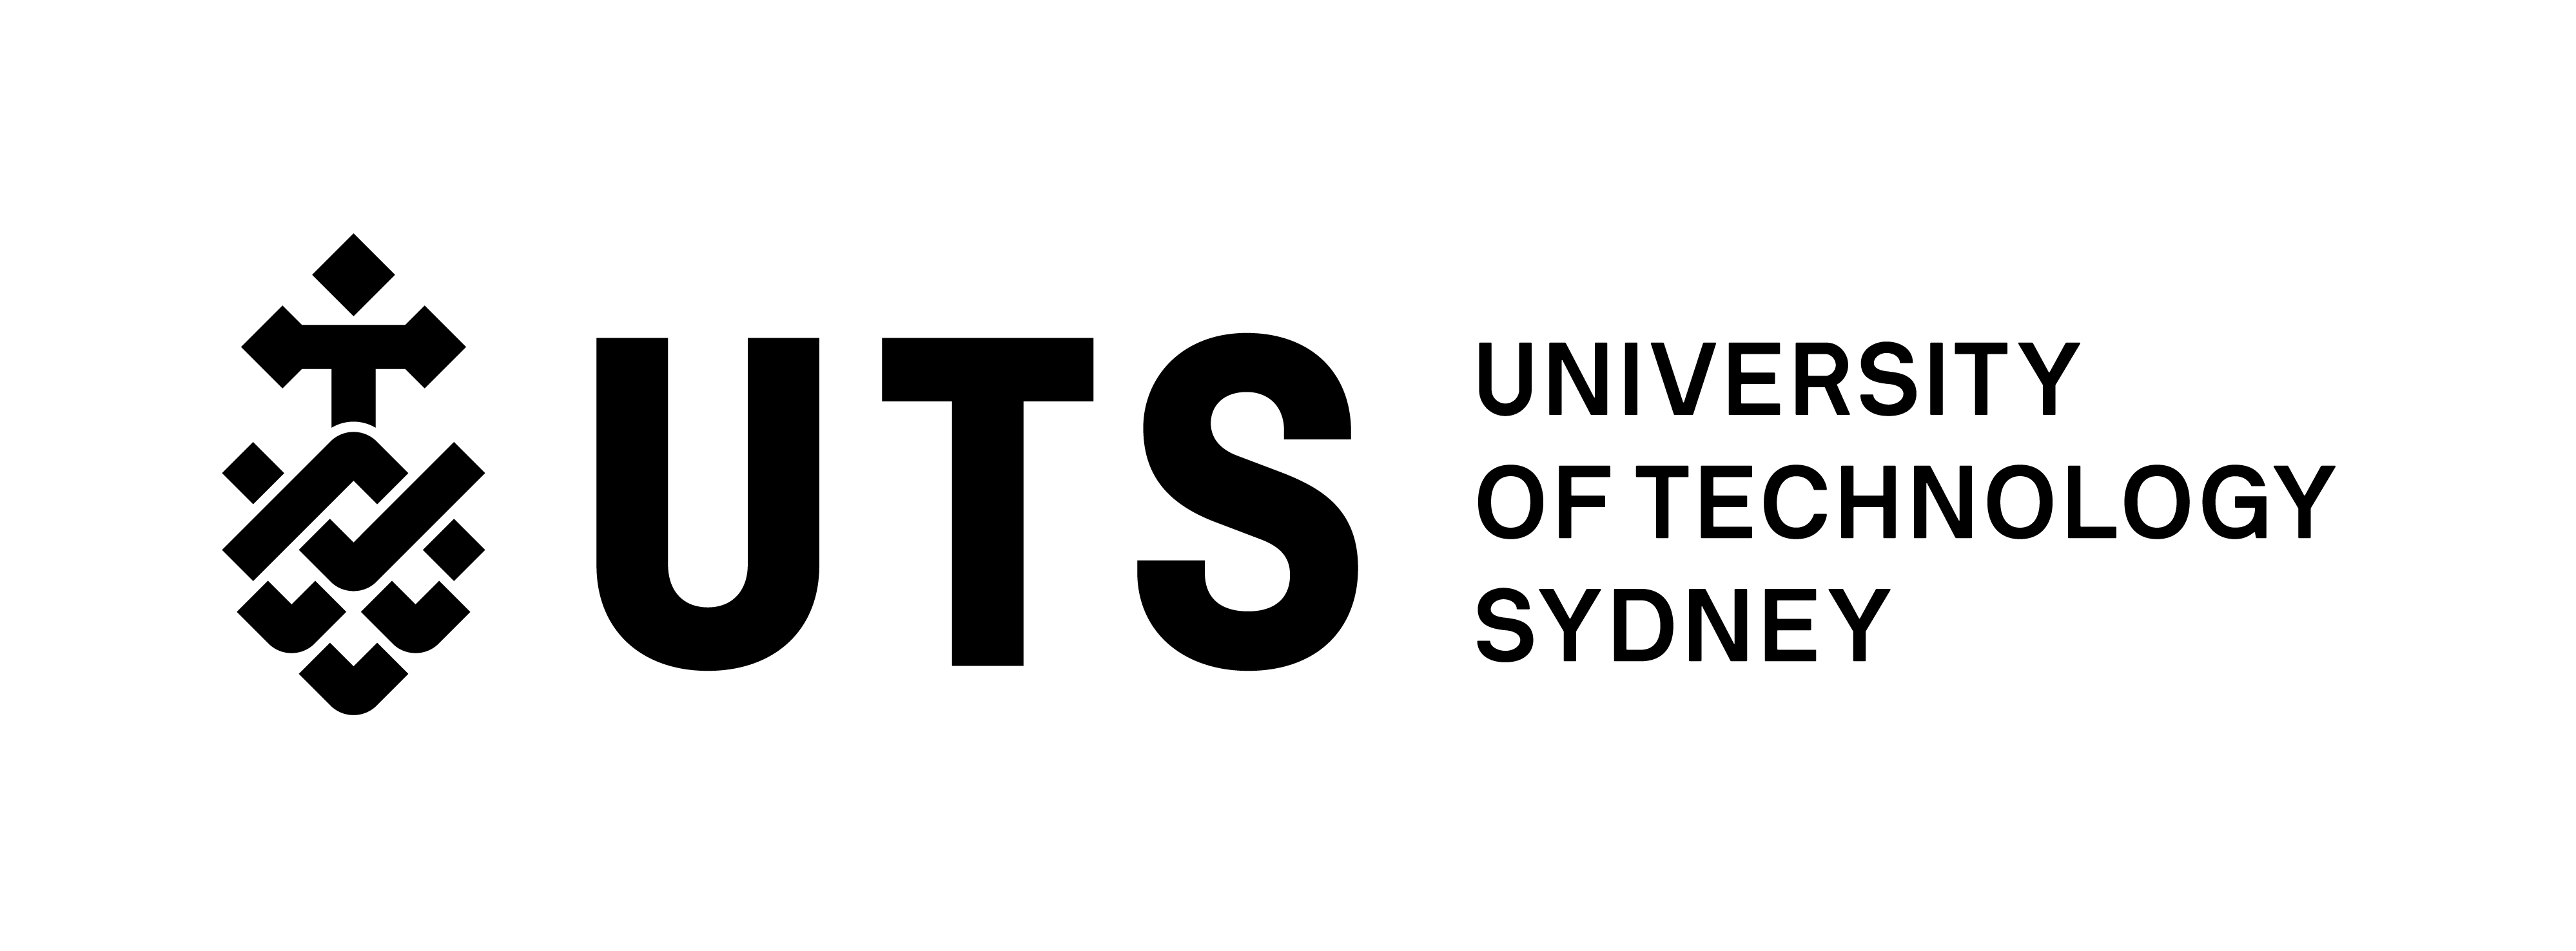 University of Technology Sydney - Bachelor of Engineering (Honours) / Bachelor of Science